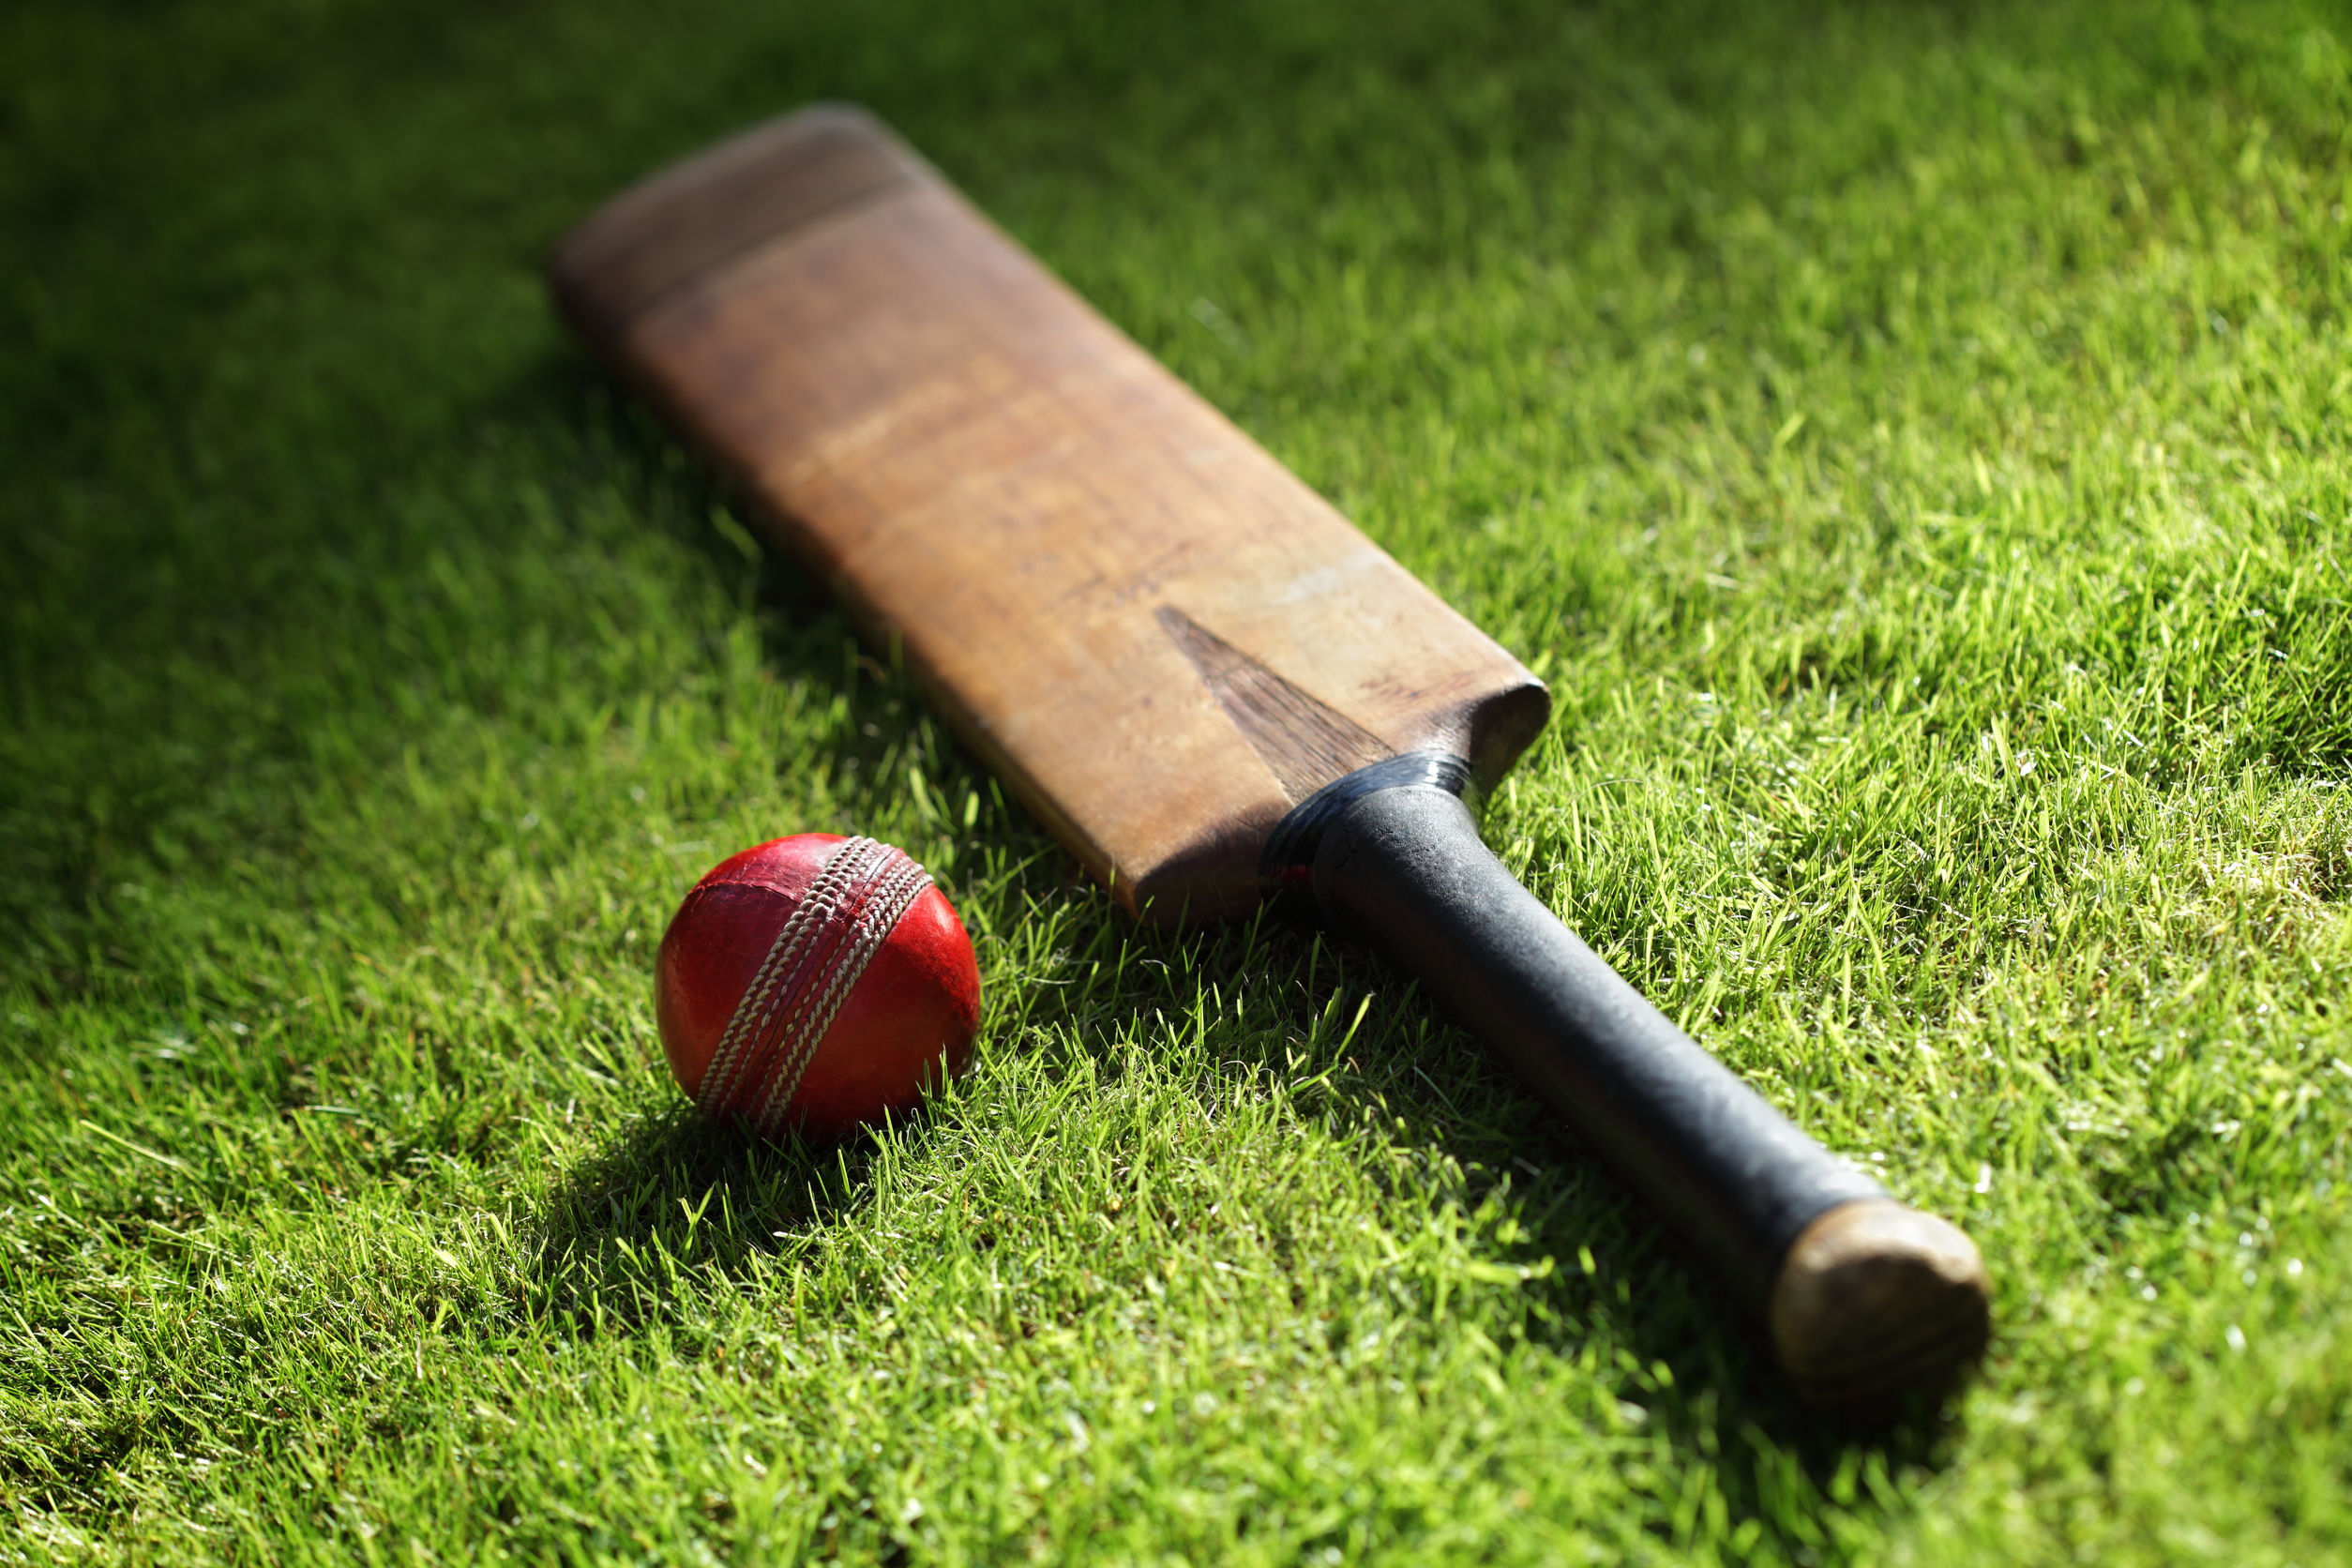 Ball tampering scandal rears its head again